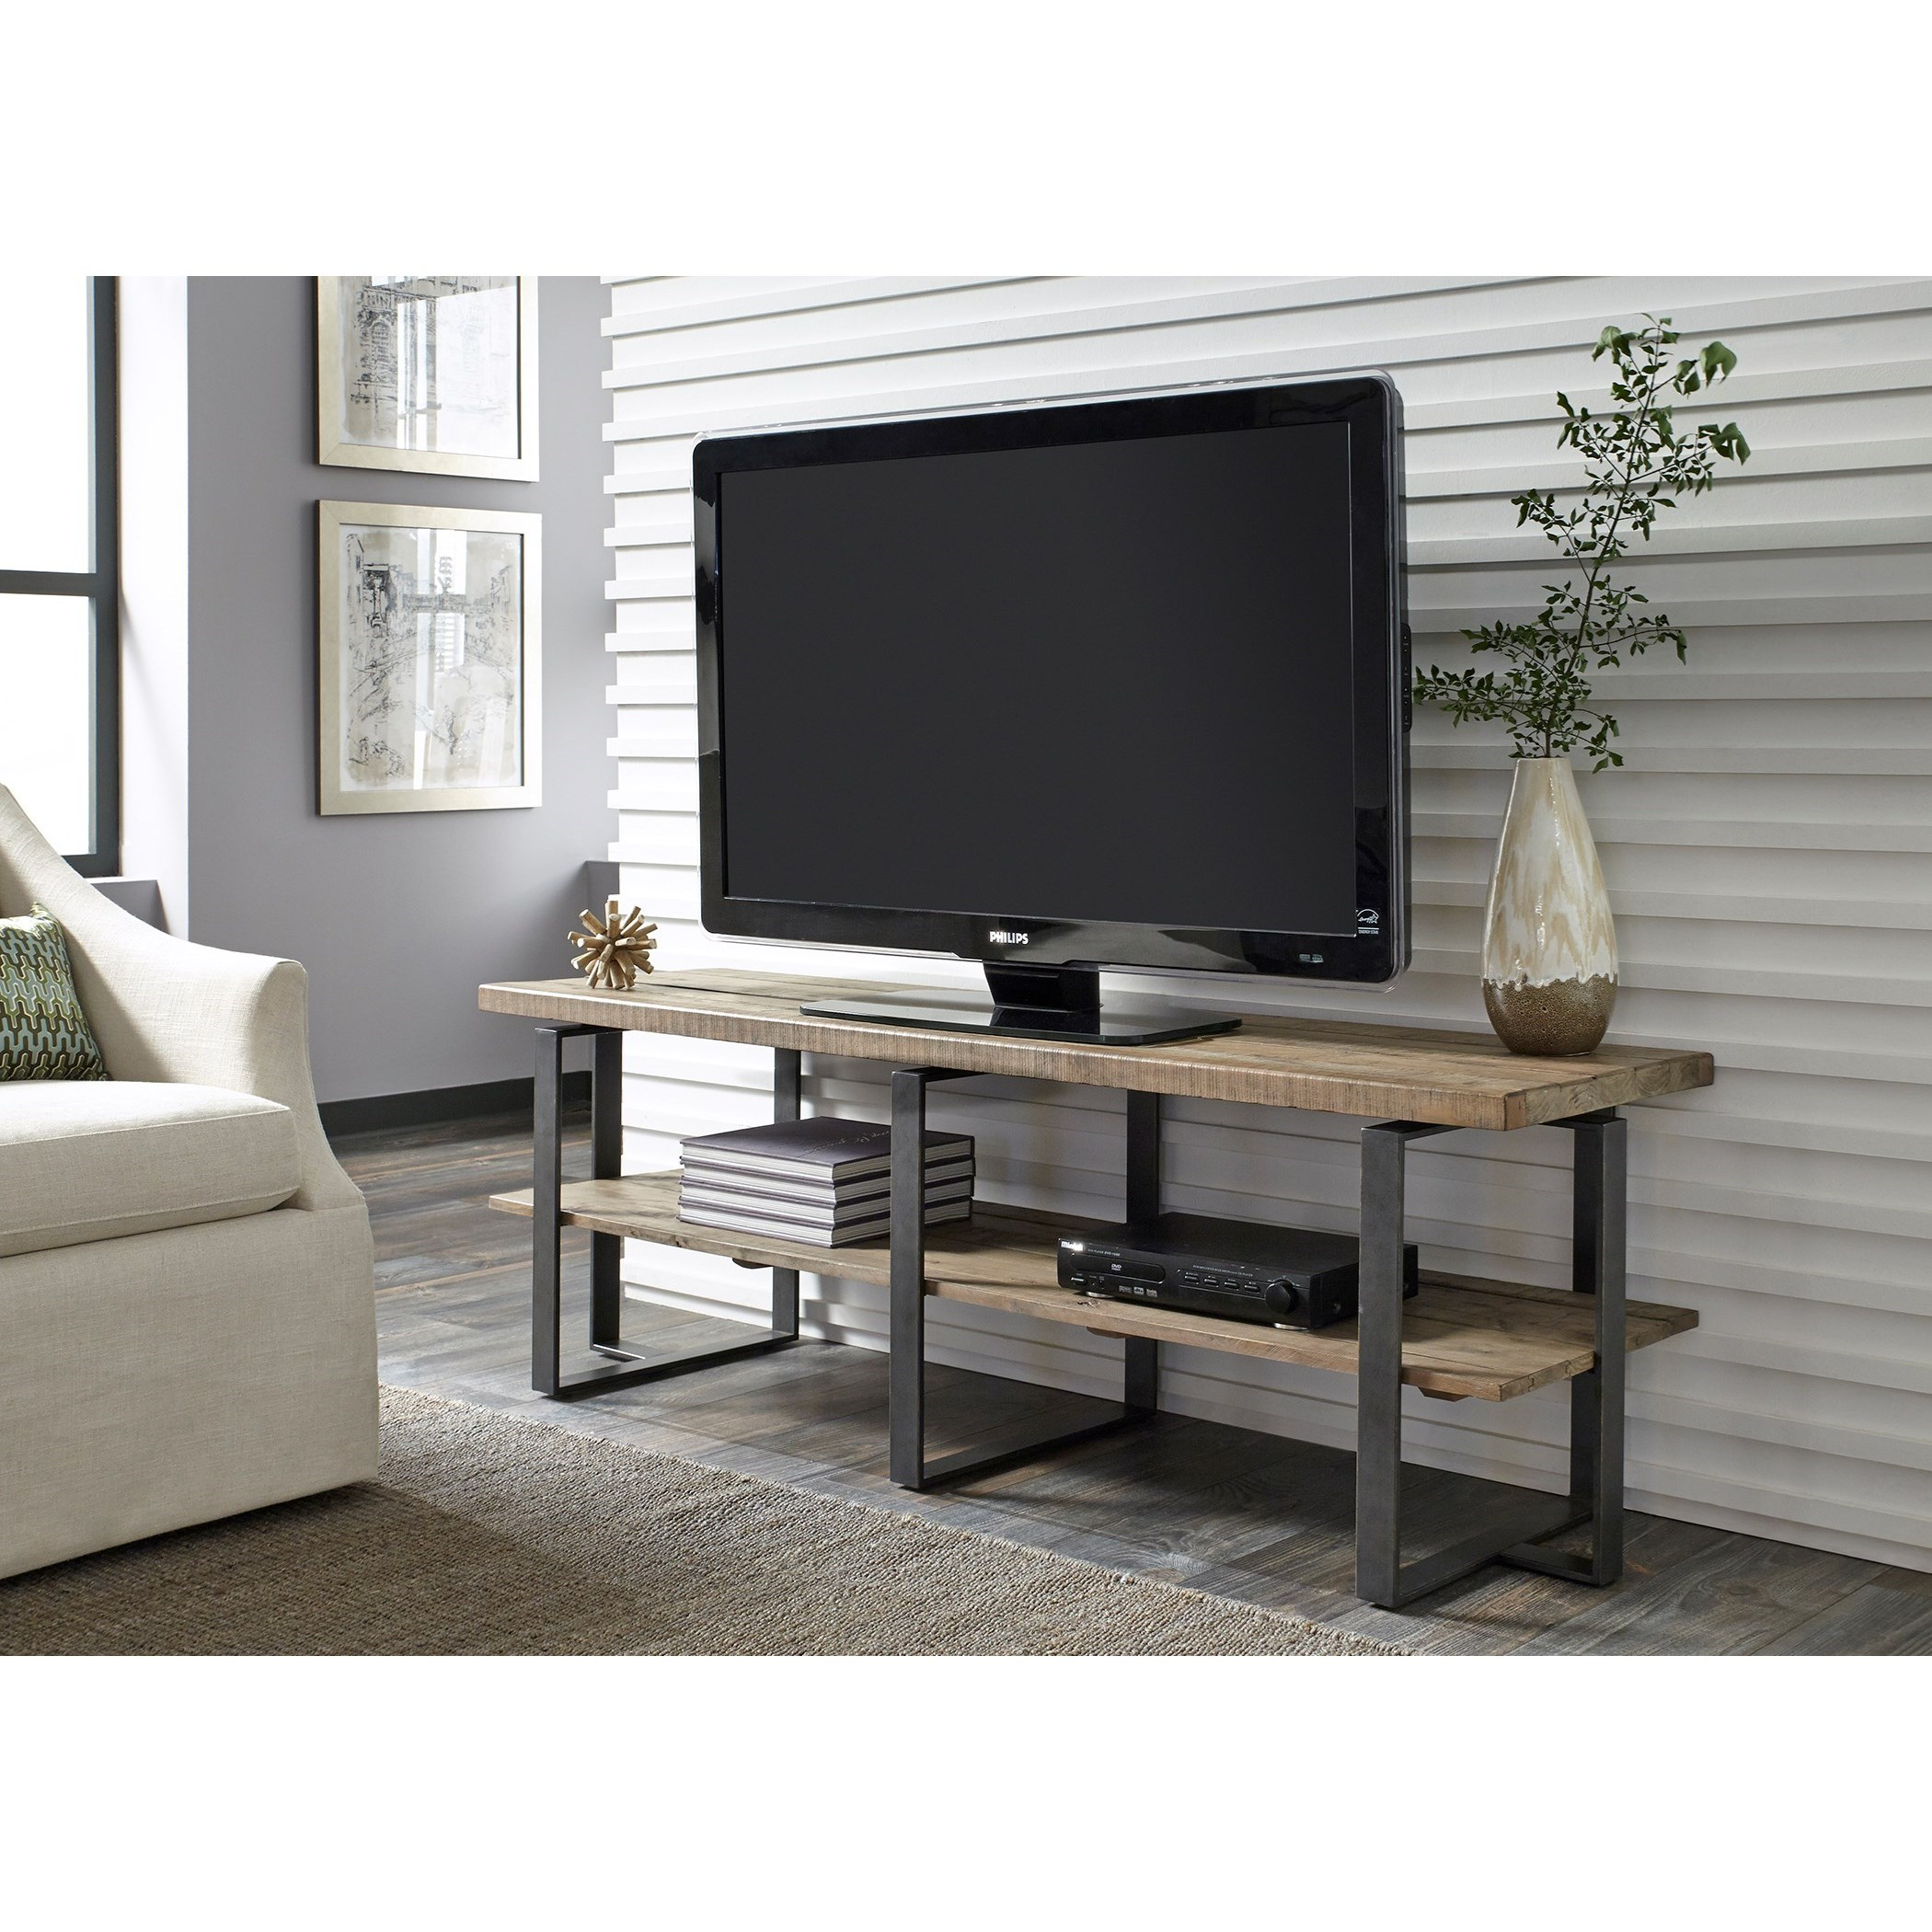 Liberty furniture baja entertainment tv console with shelf for Baja furniture